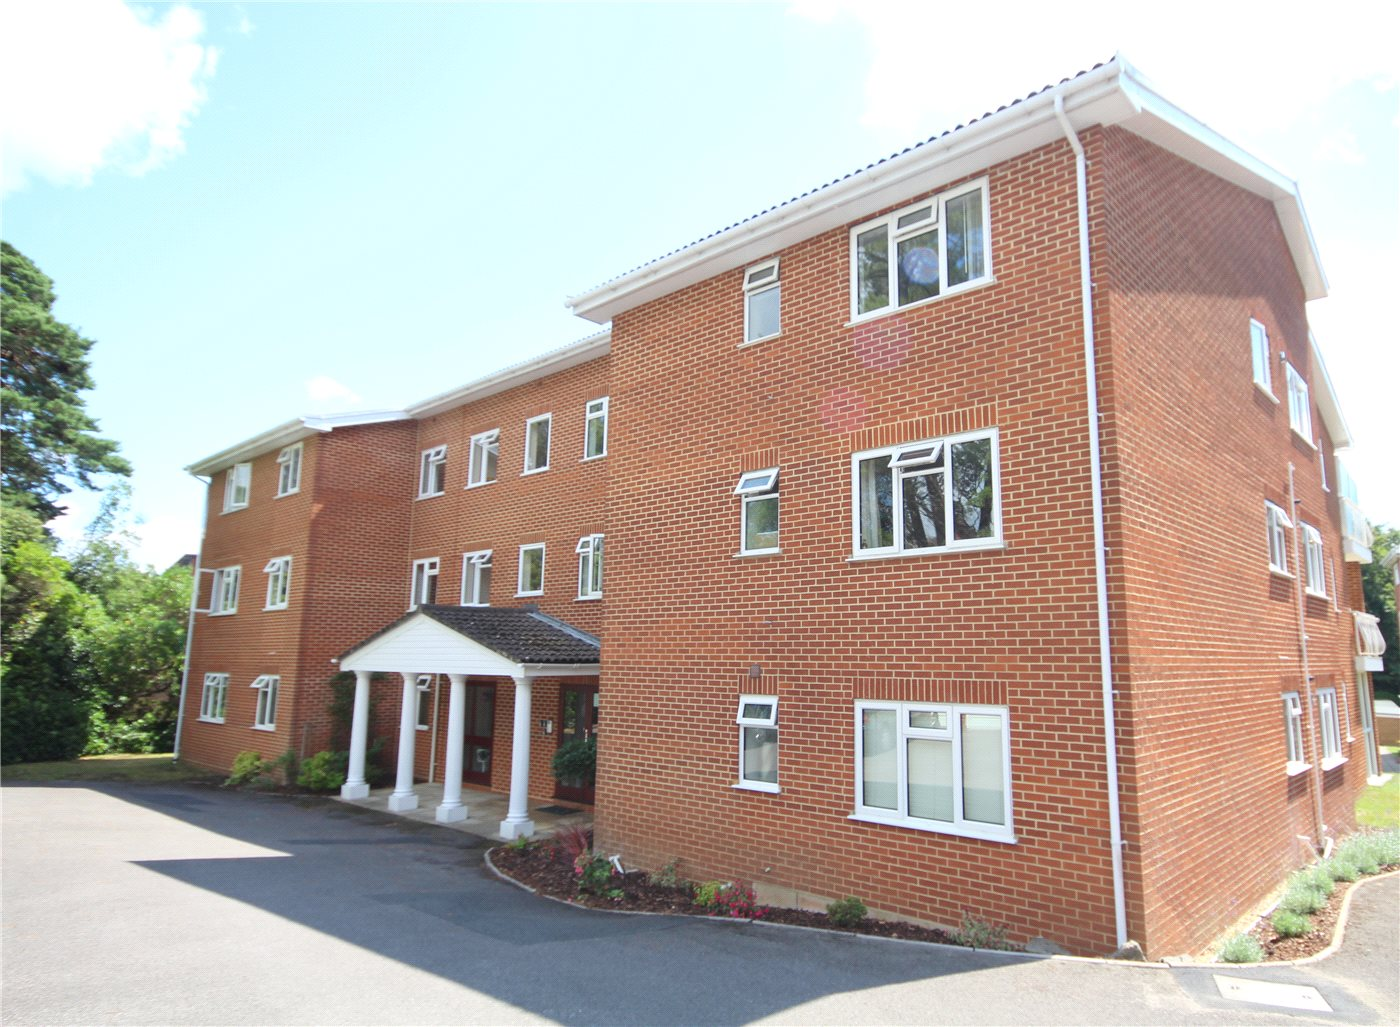 3 Bedrooms Flat for sale in Overbury Road, Lower Parkstone, Poole, Dorset, BH14